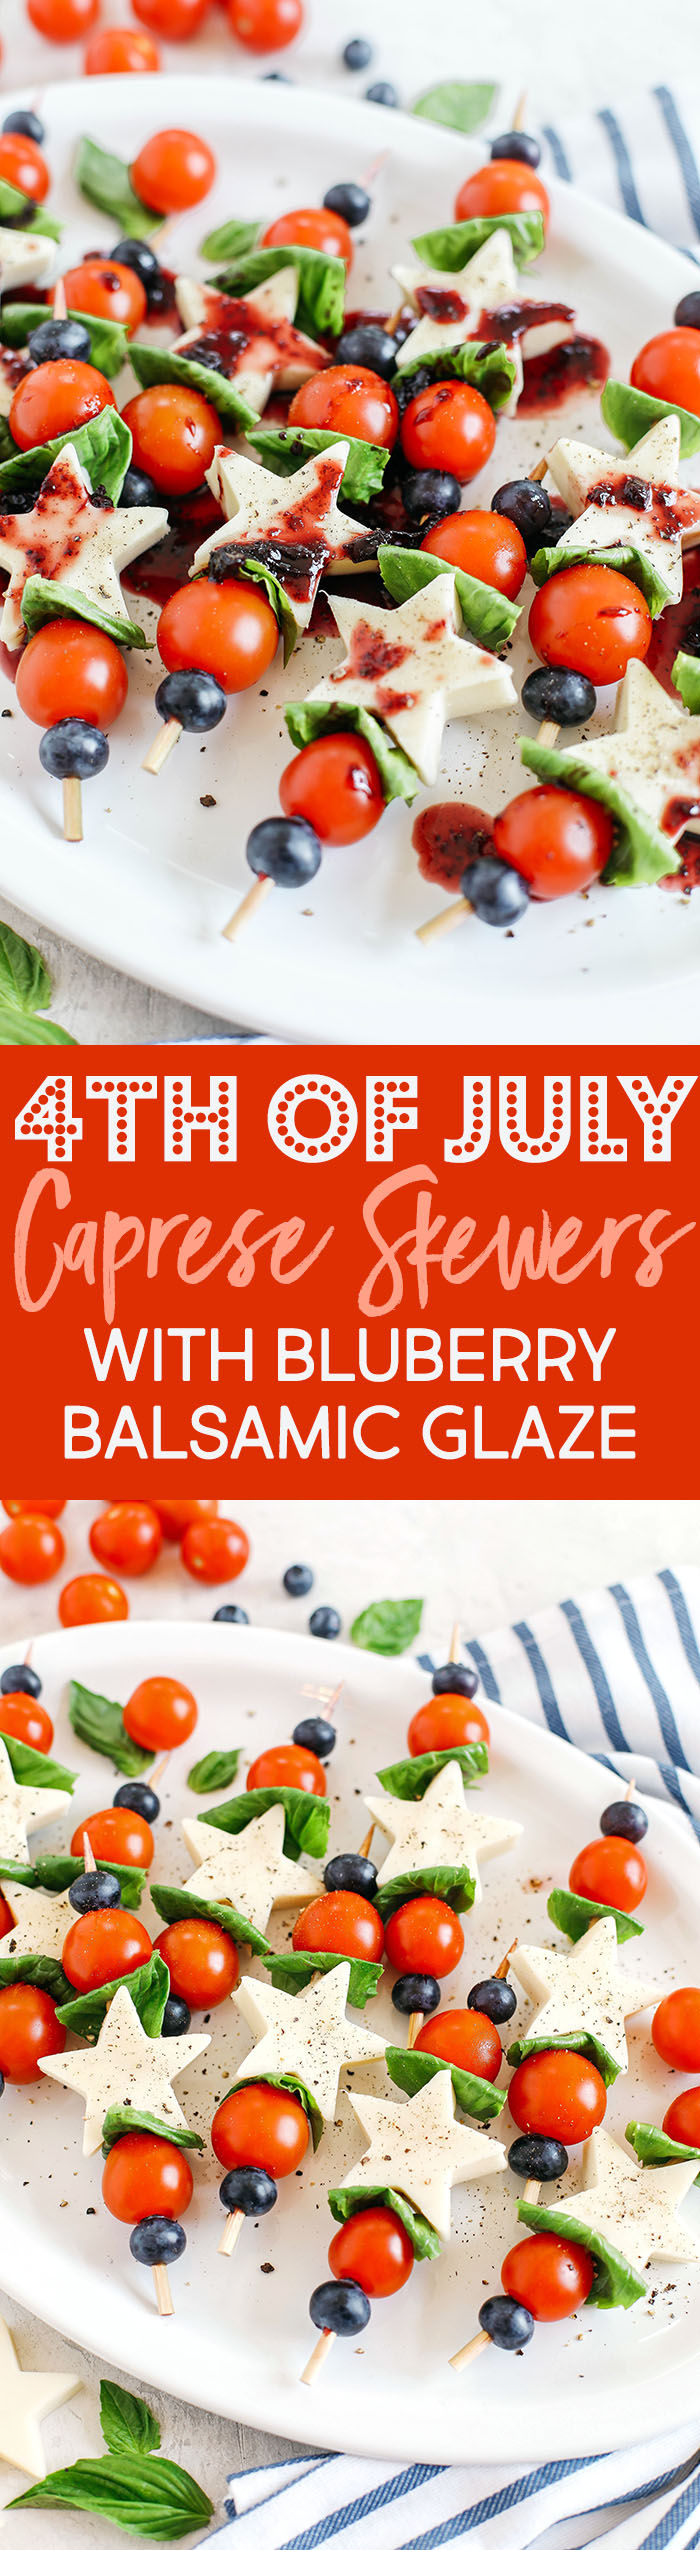 These Caprese Skewers with Blueberry Balsamic Glaze are healthy, incredibly delicious and make the perfect festive appetizer for Memorial Day, 4th of July or Labor Day weekend!